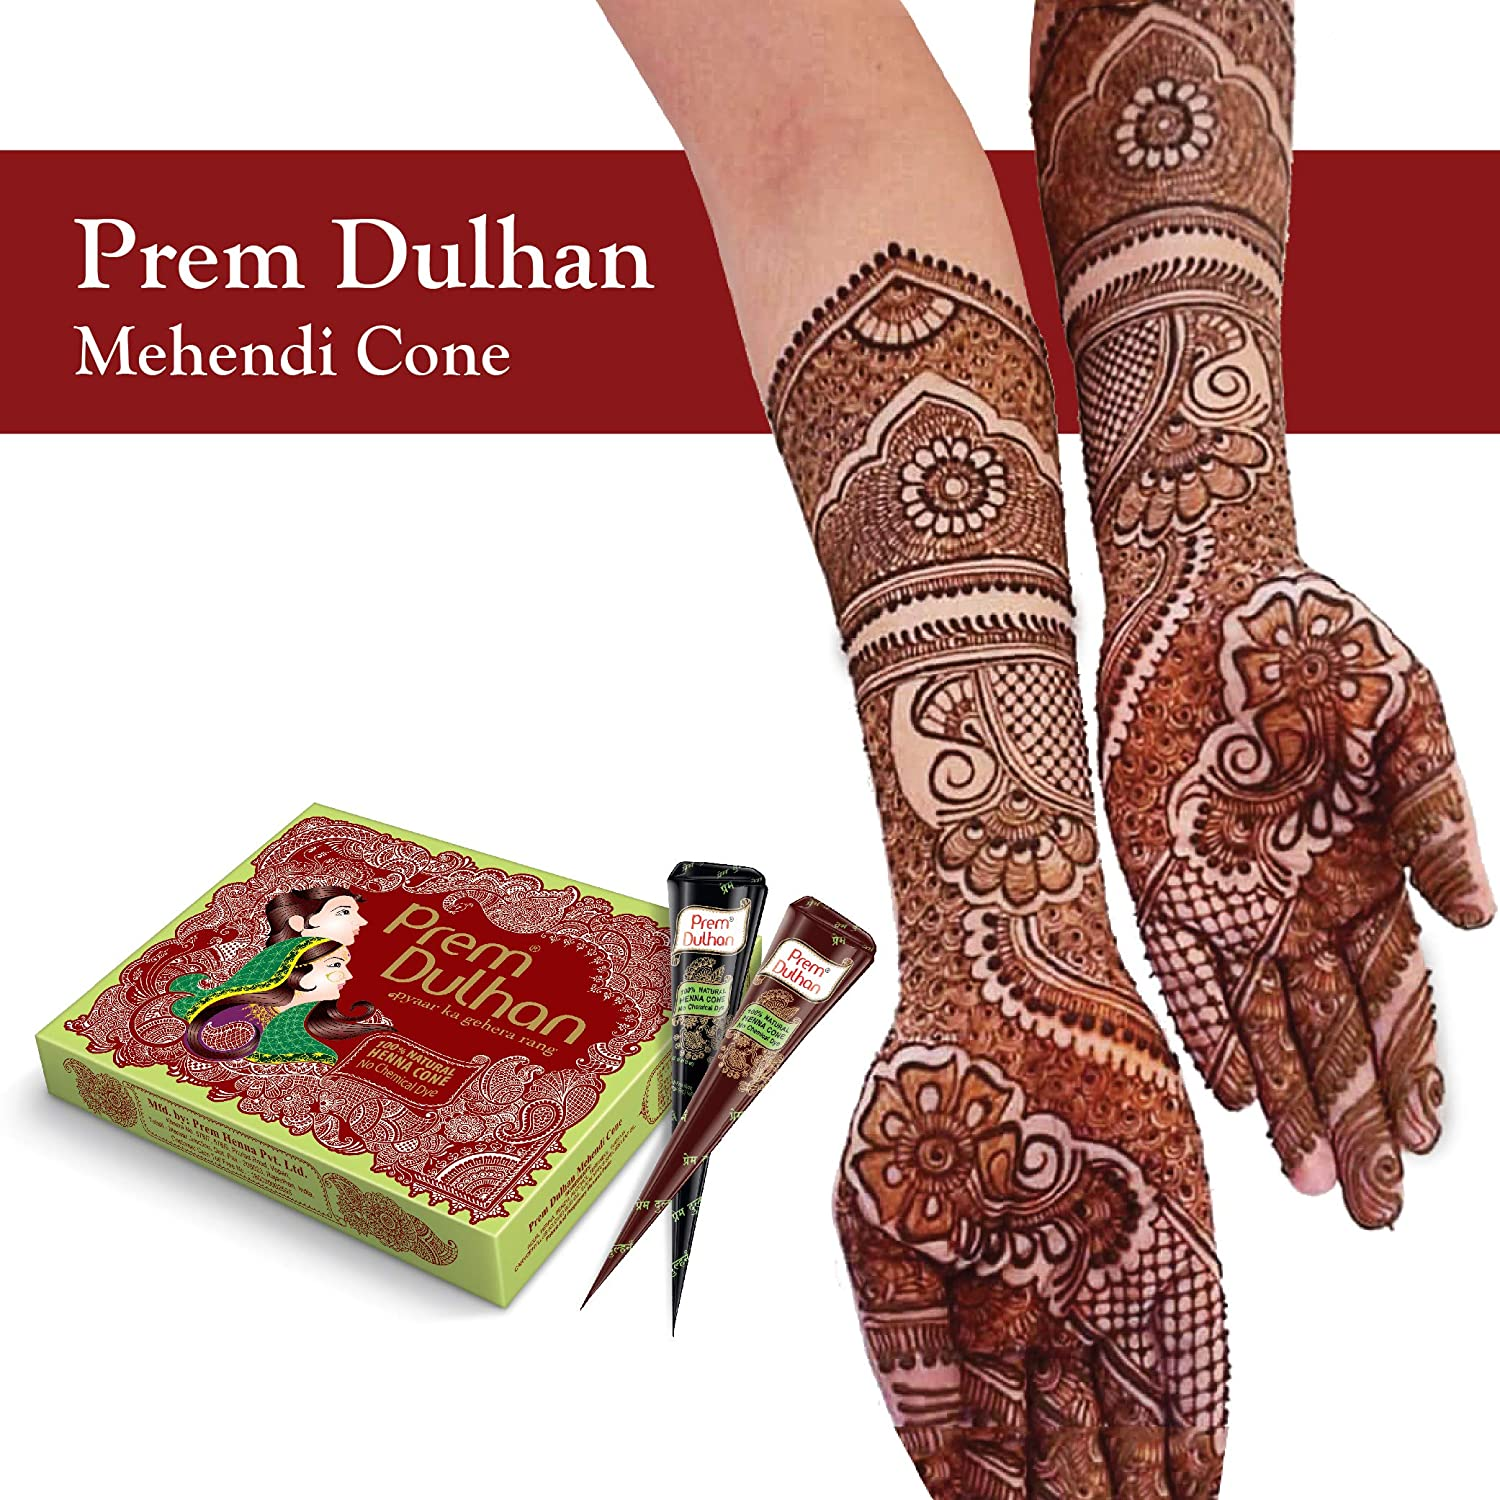 d9d26f9faafb1 Buy Prem Dulhan Mehendi Cone Online at Low Prices in India - Amazon.in